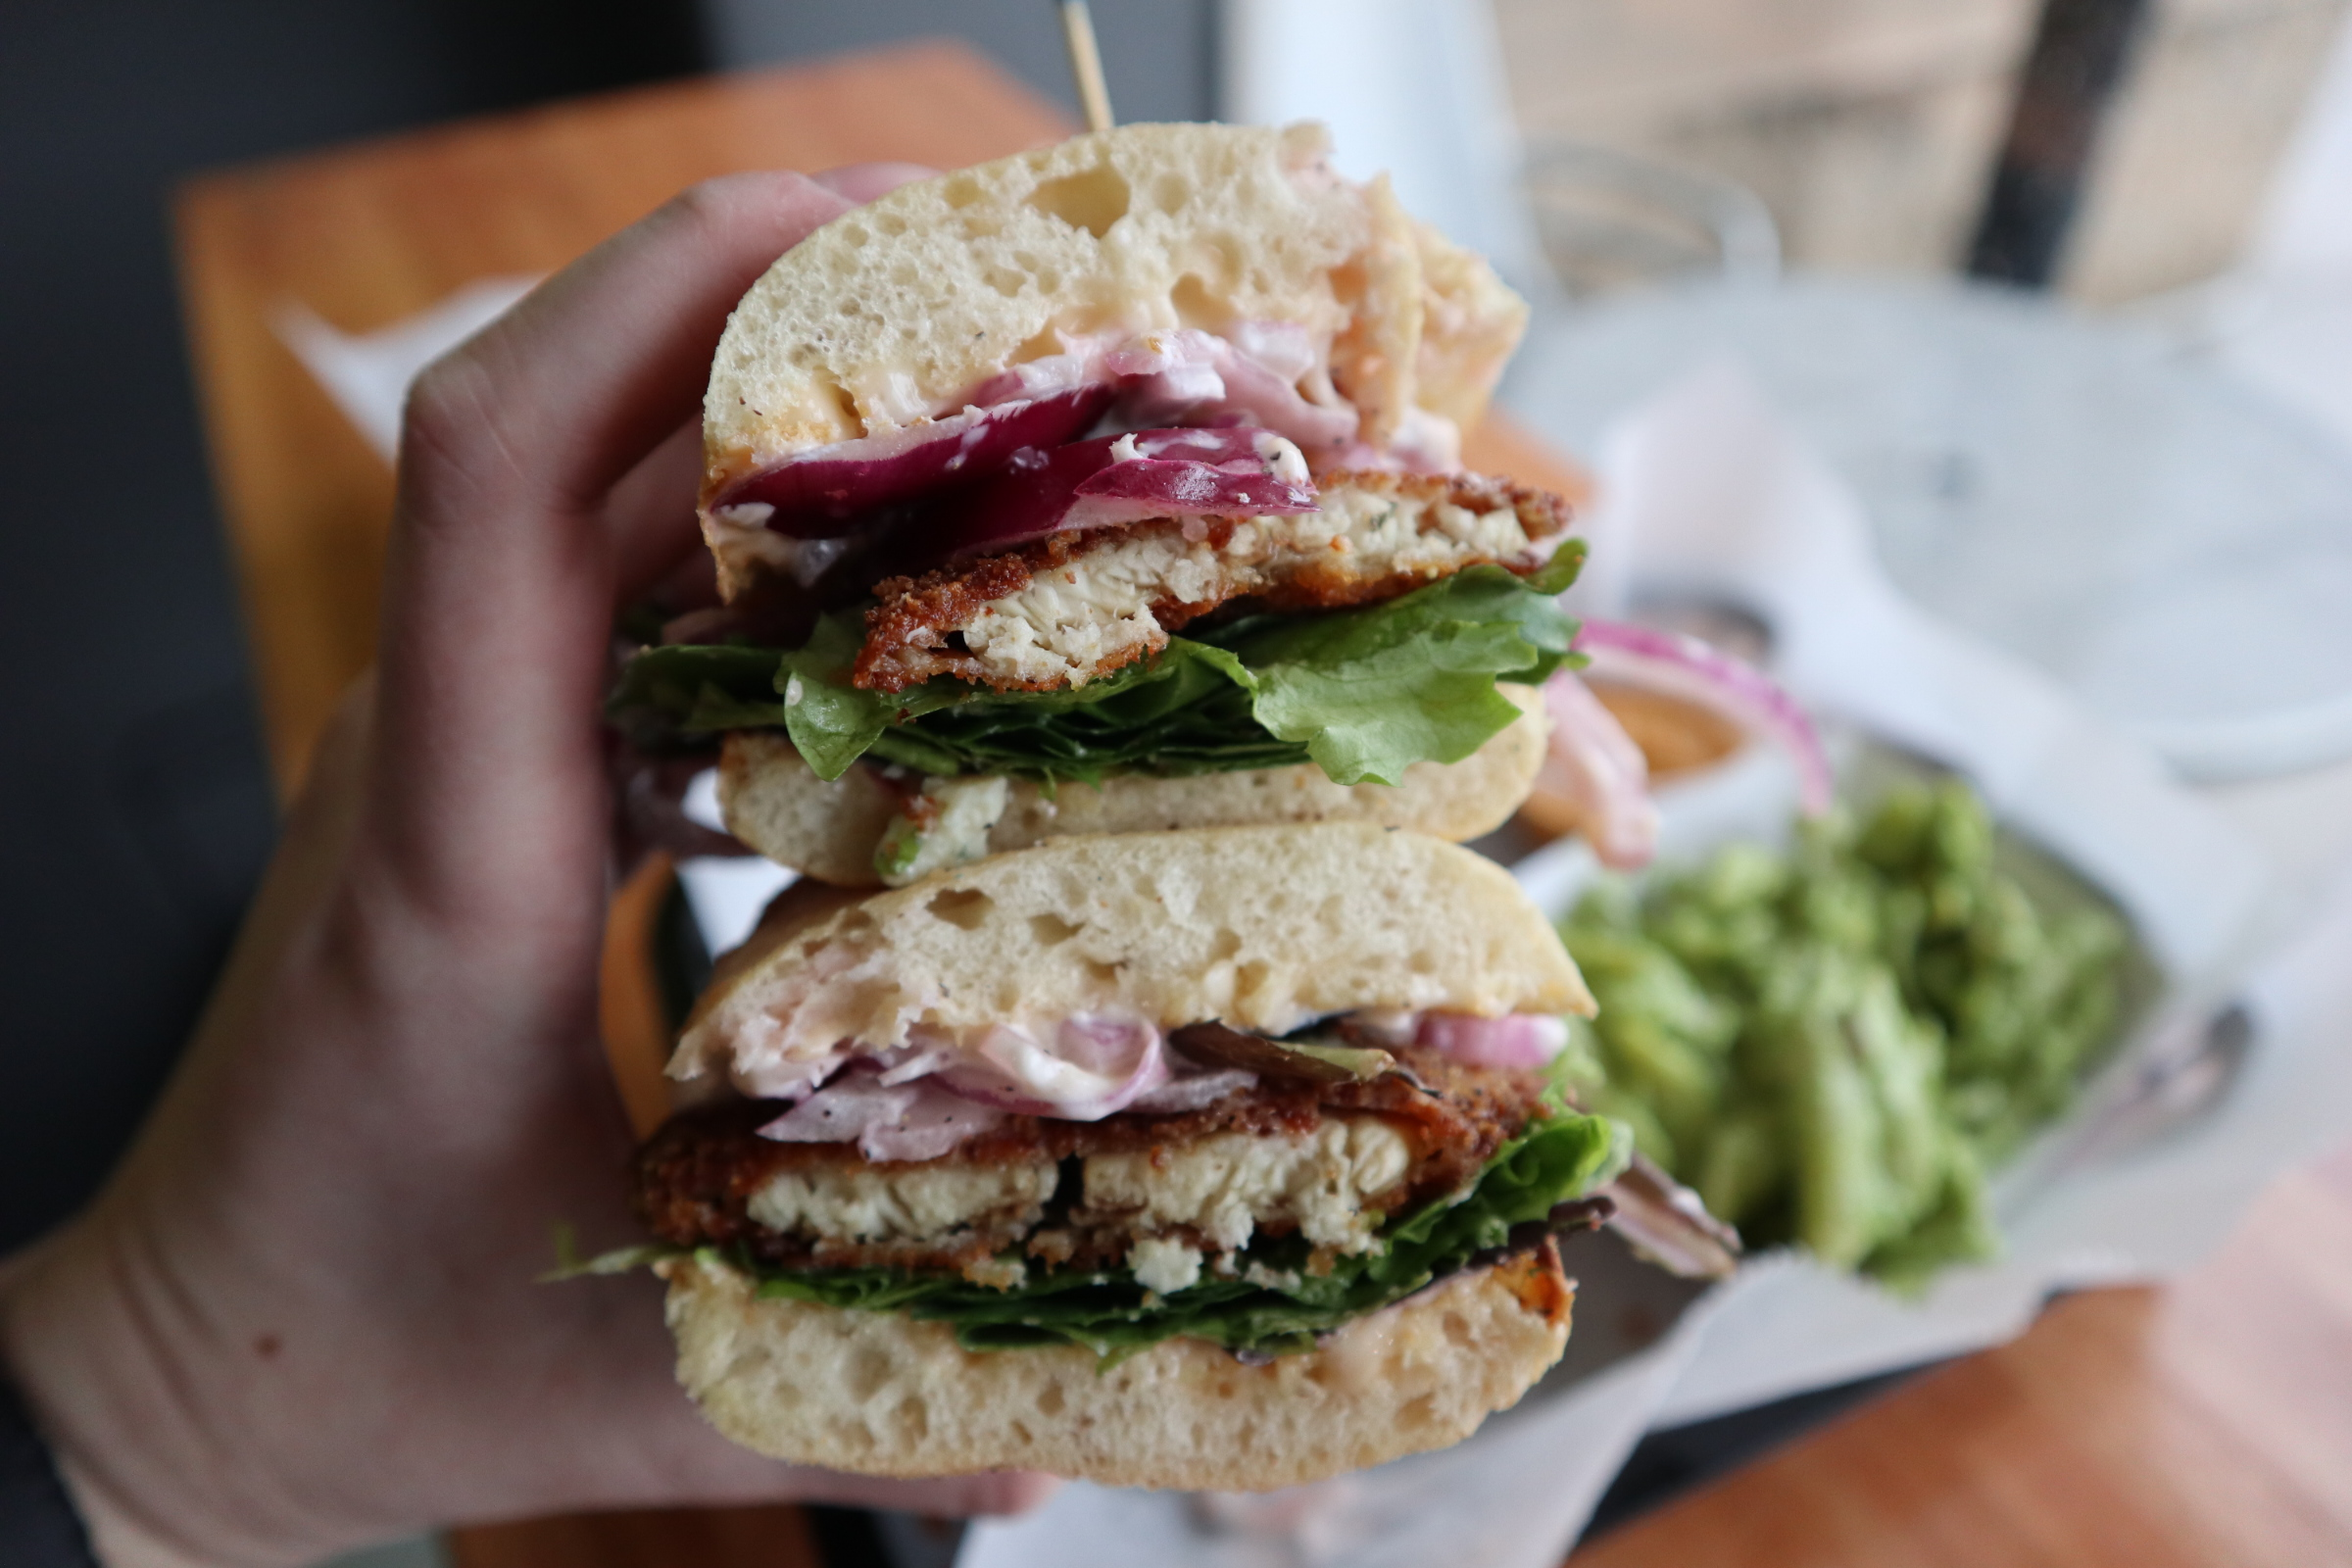 #11 Criollo Fish Sandwich: Fried tilapia, pickled red onions, fresh jalapenos, mixed green lettuce, and rocoto mayo  Side of pasta salad with cilantro cream